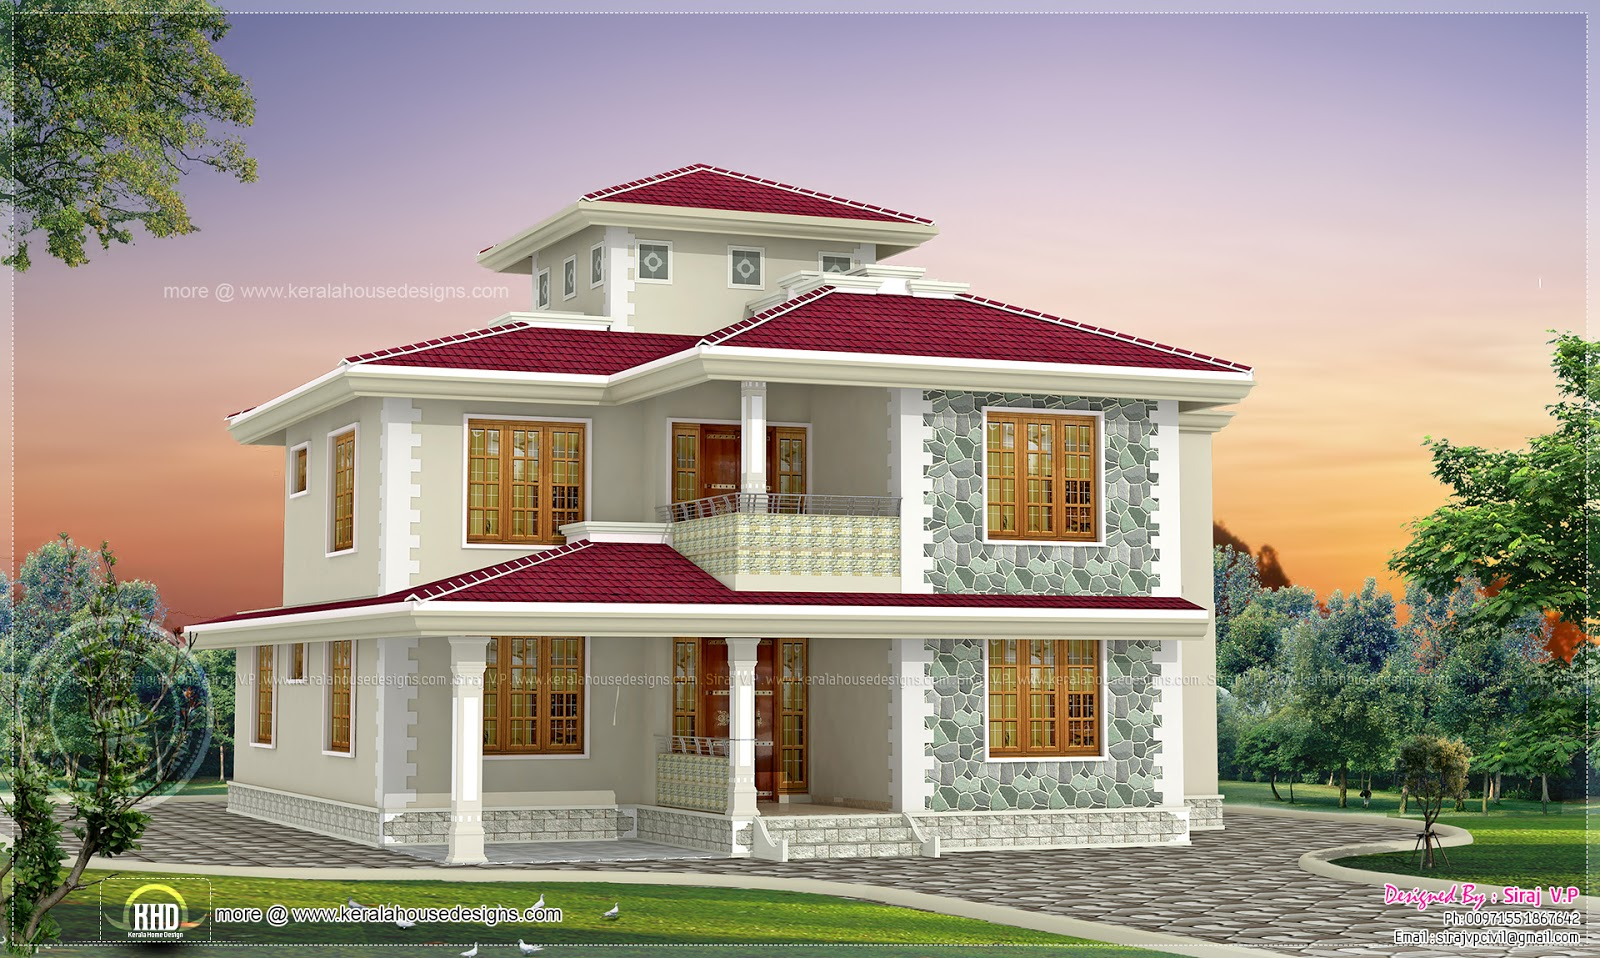 4 bhk kerala style home design home kerala plans for Kerala house plans 2014